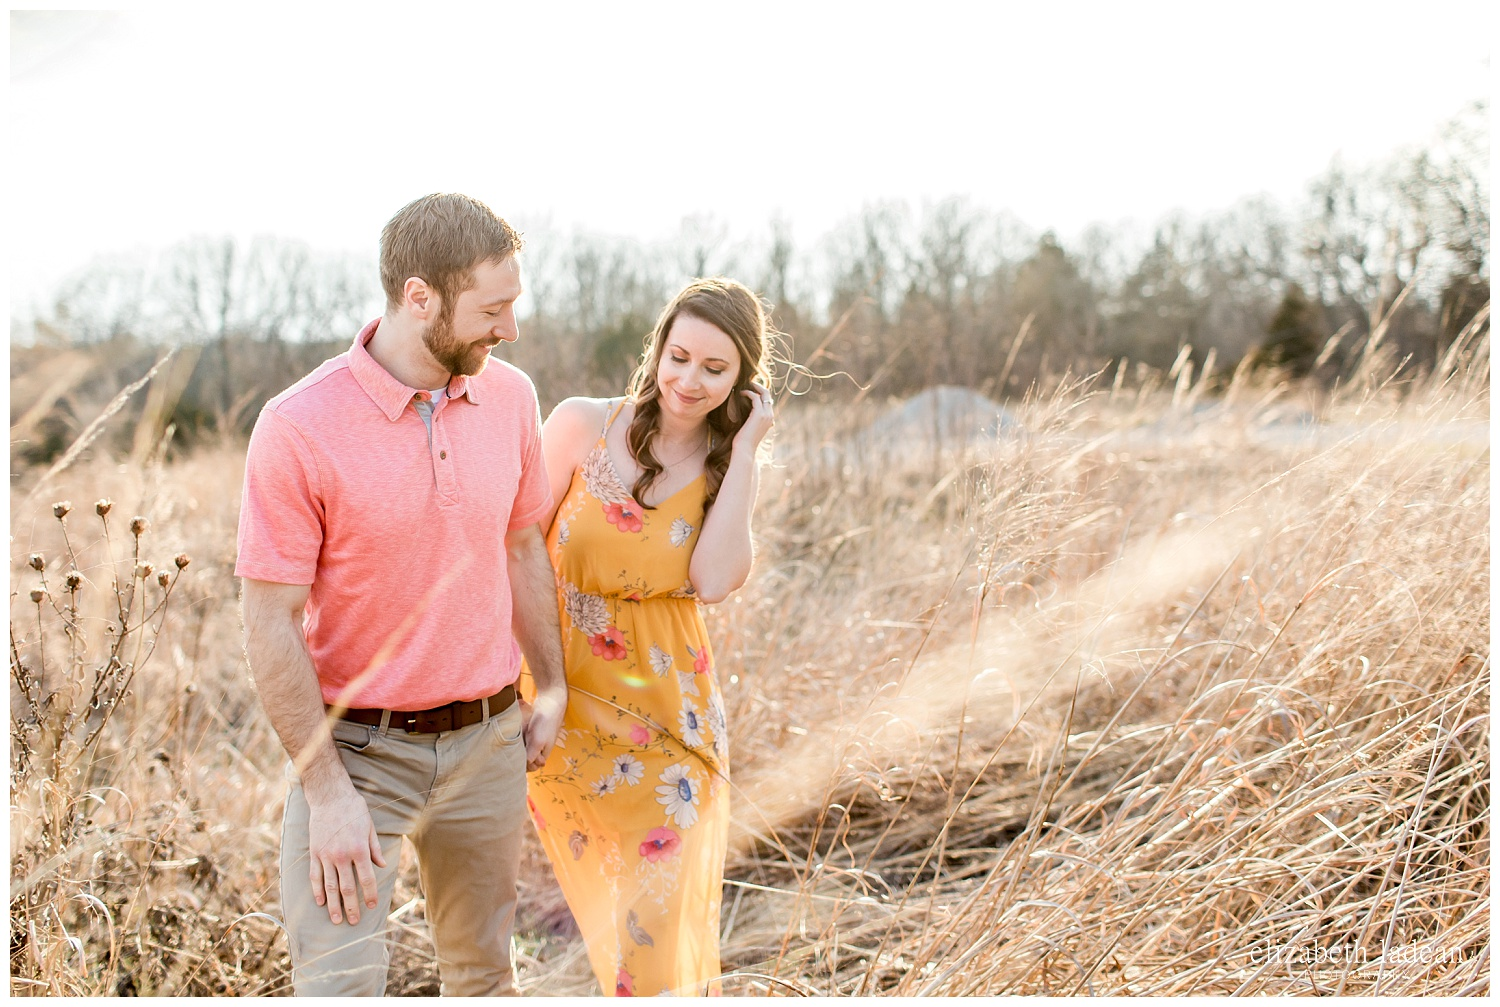 Kansas-City-Engagement-Photographer-K+D2018-elizabeth-ladean-photography-photo-_6622.jpg